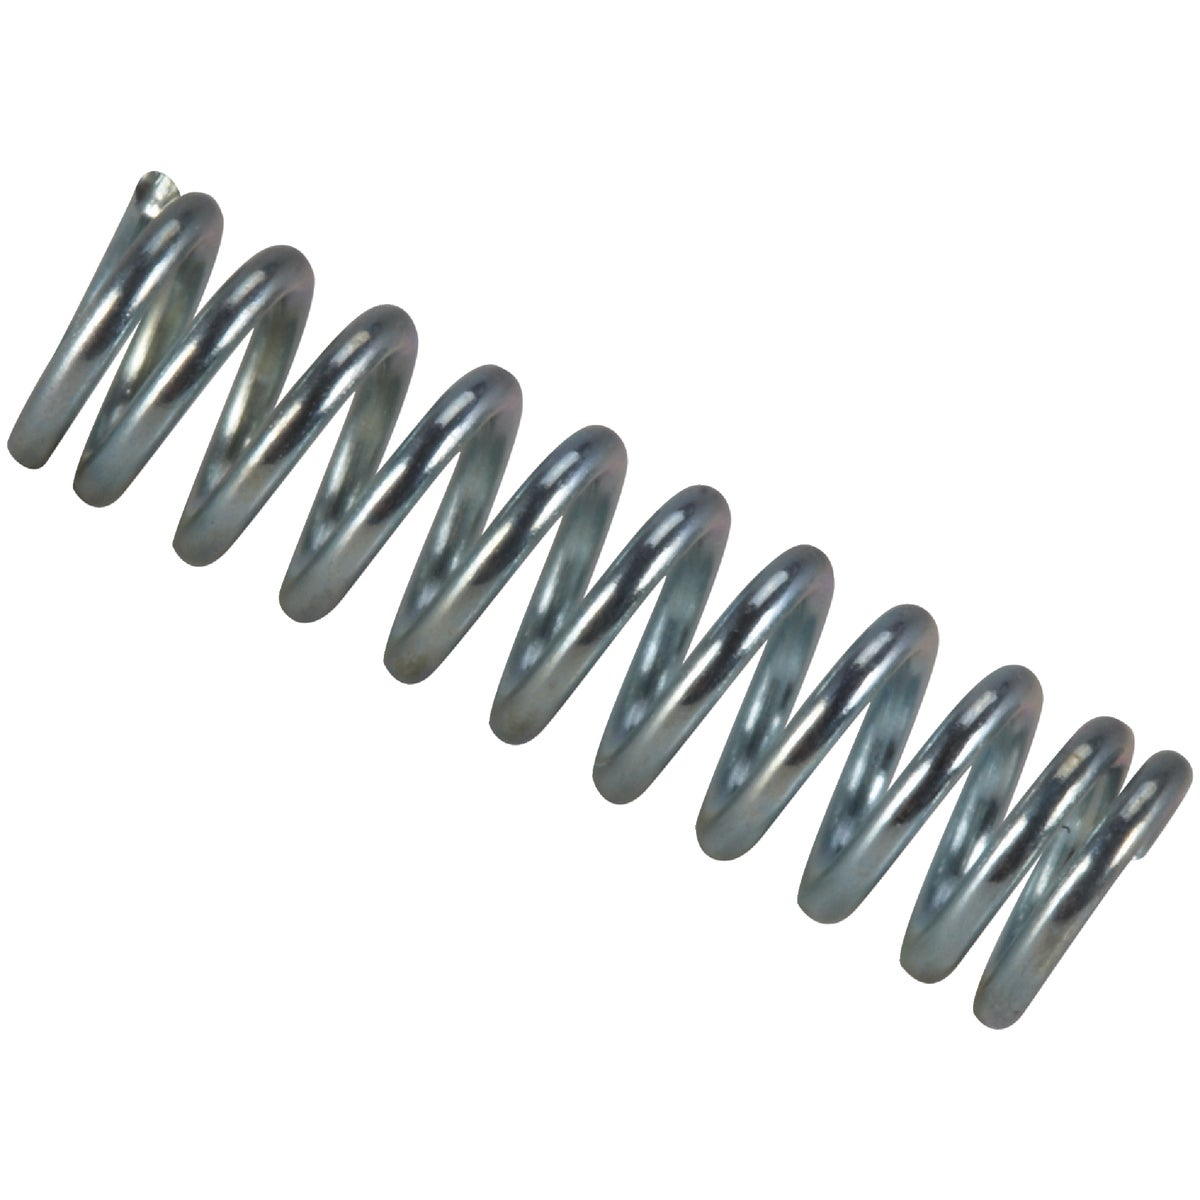 COMPRESSION SPRING - C-570 by Century Spring Corp